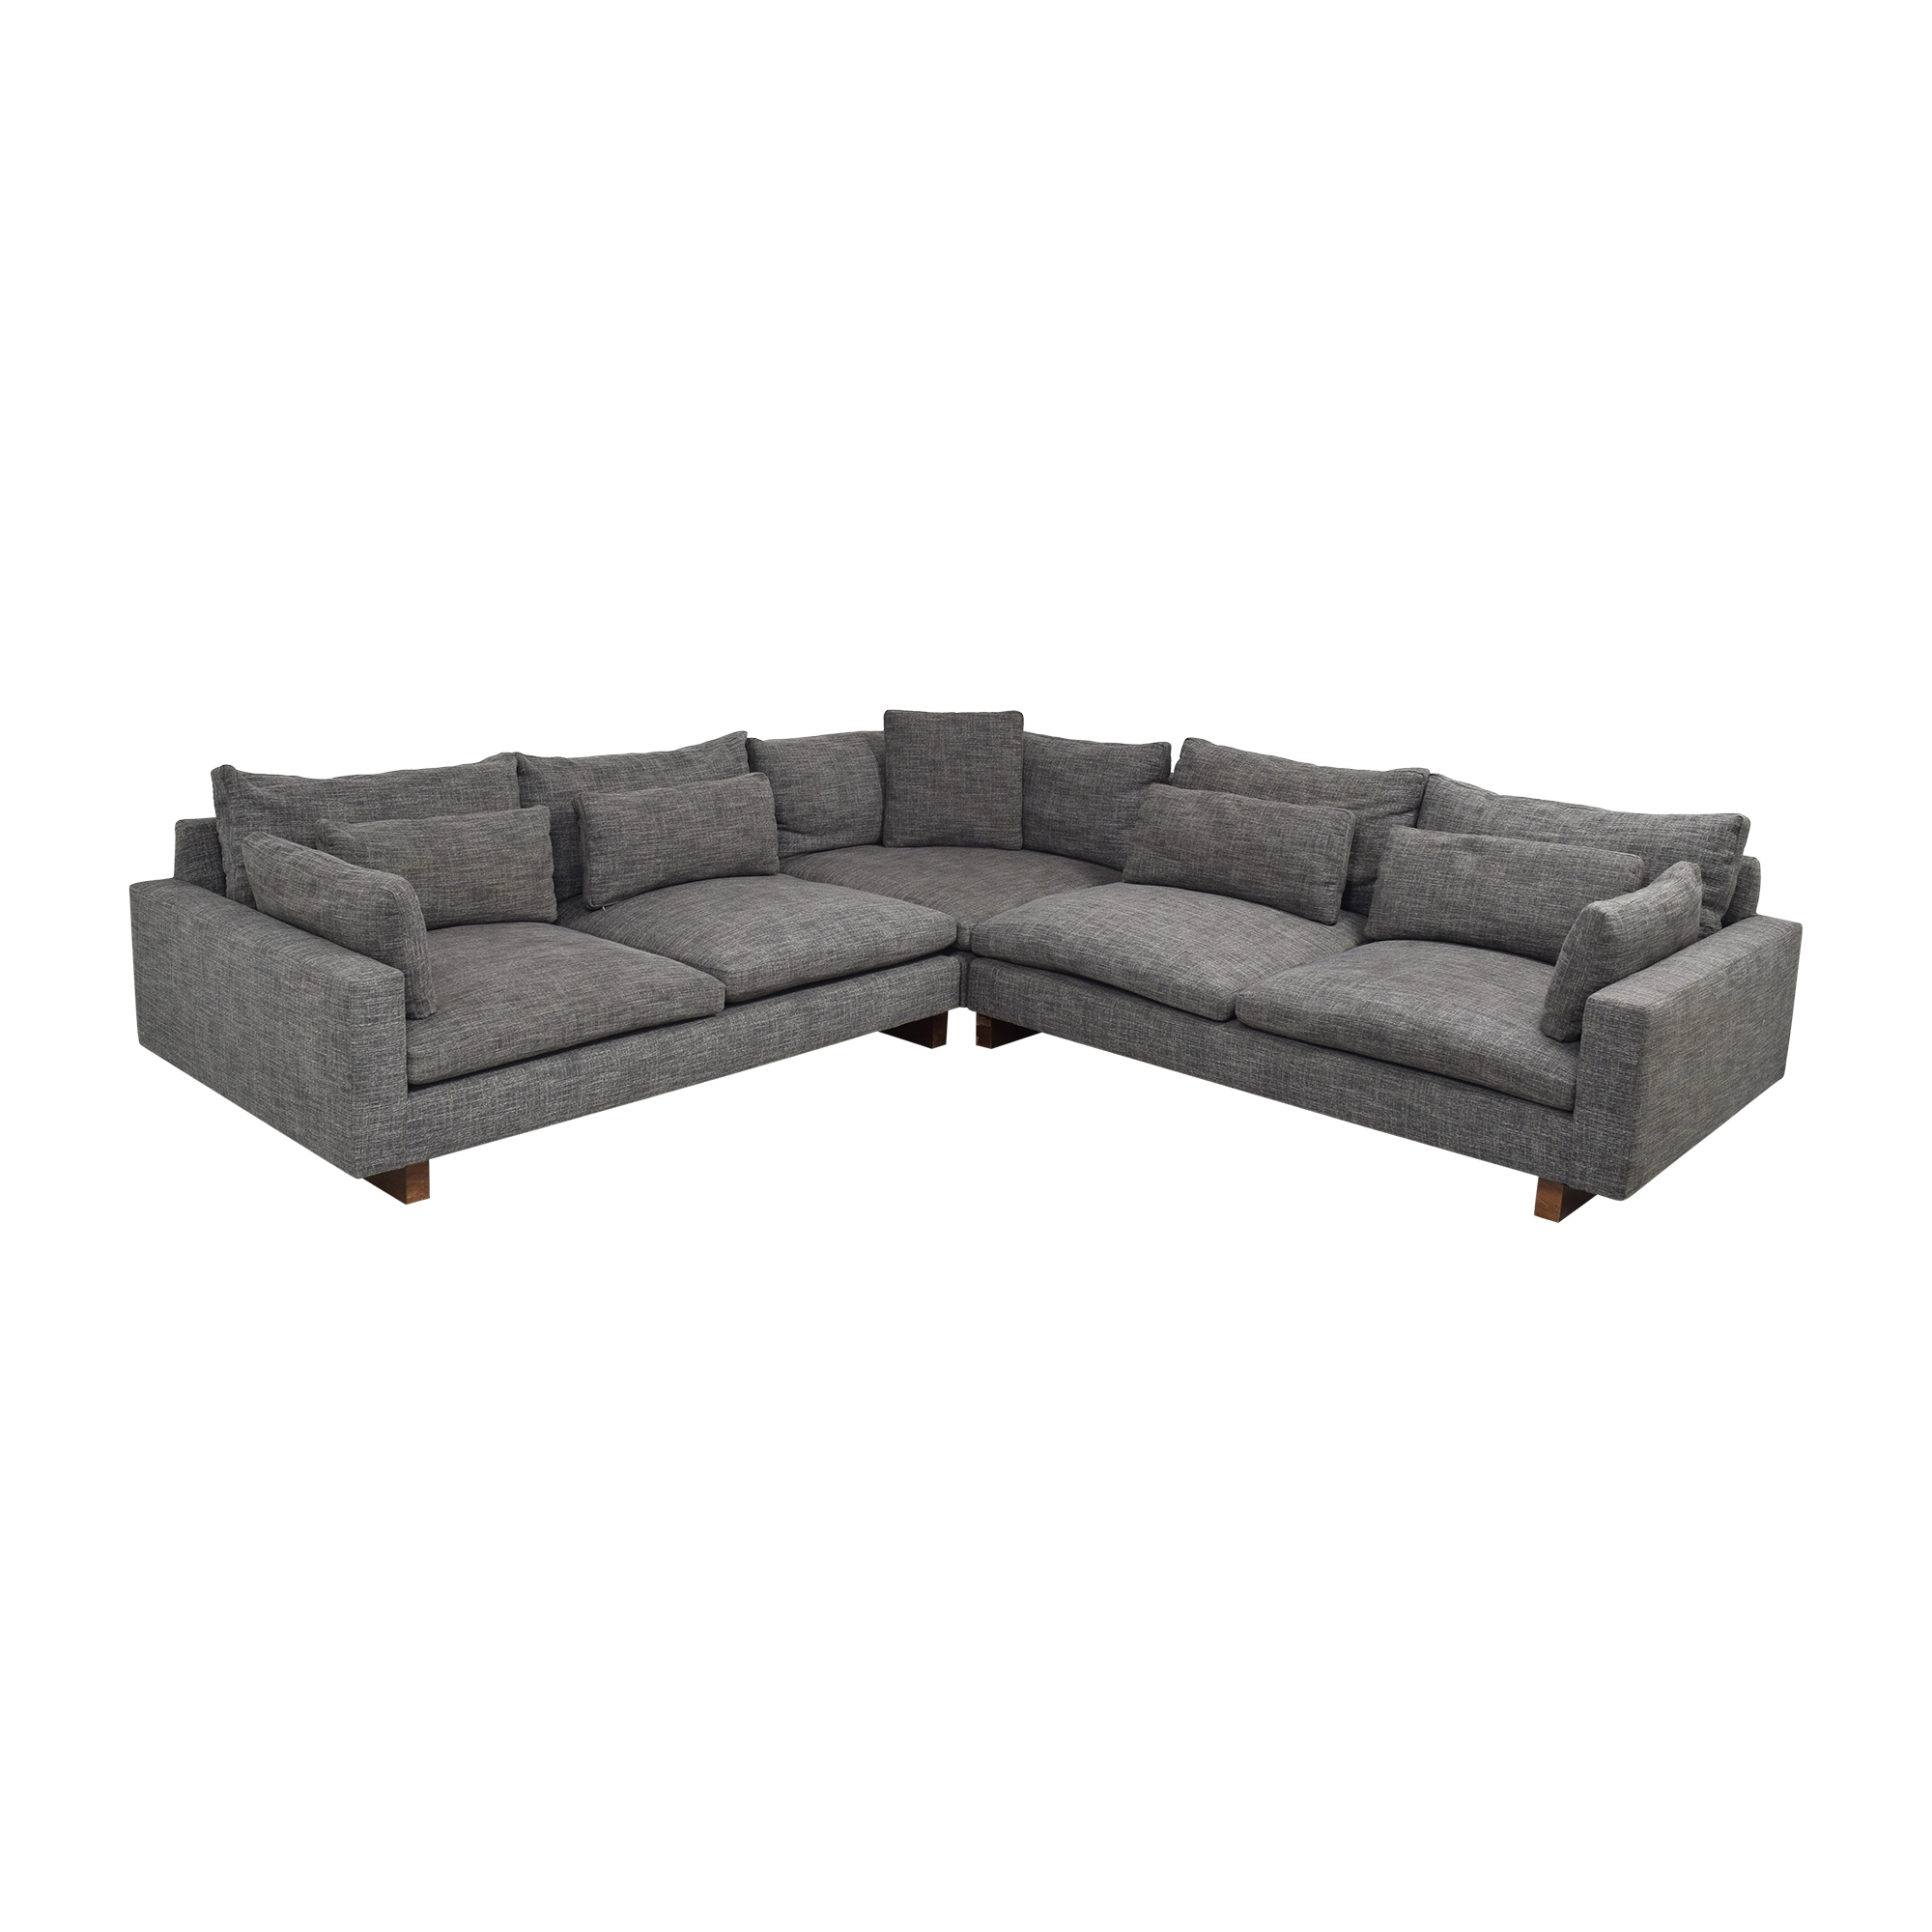 West Elm West Elm Harmony 3-Piece L-Shaped Sectional used